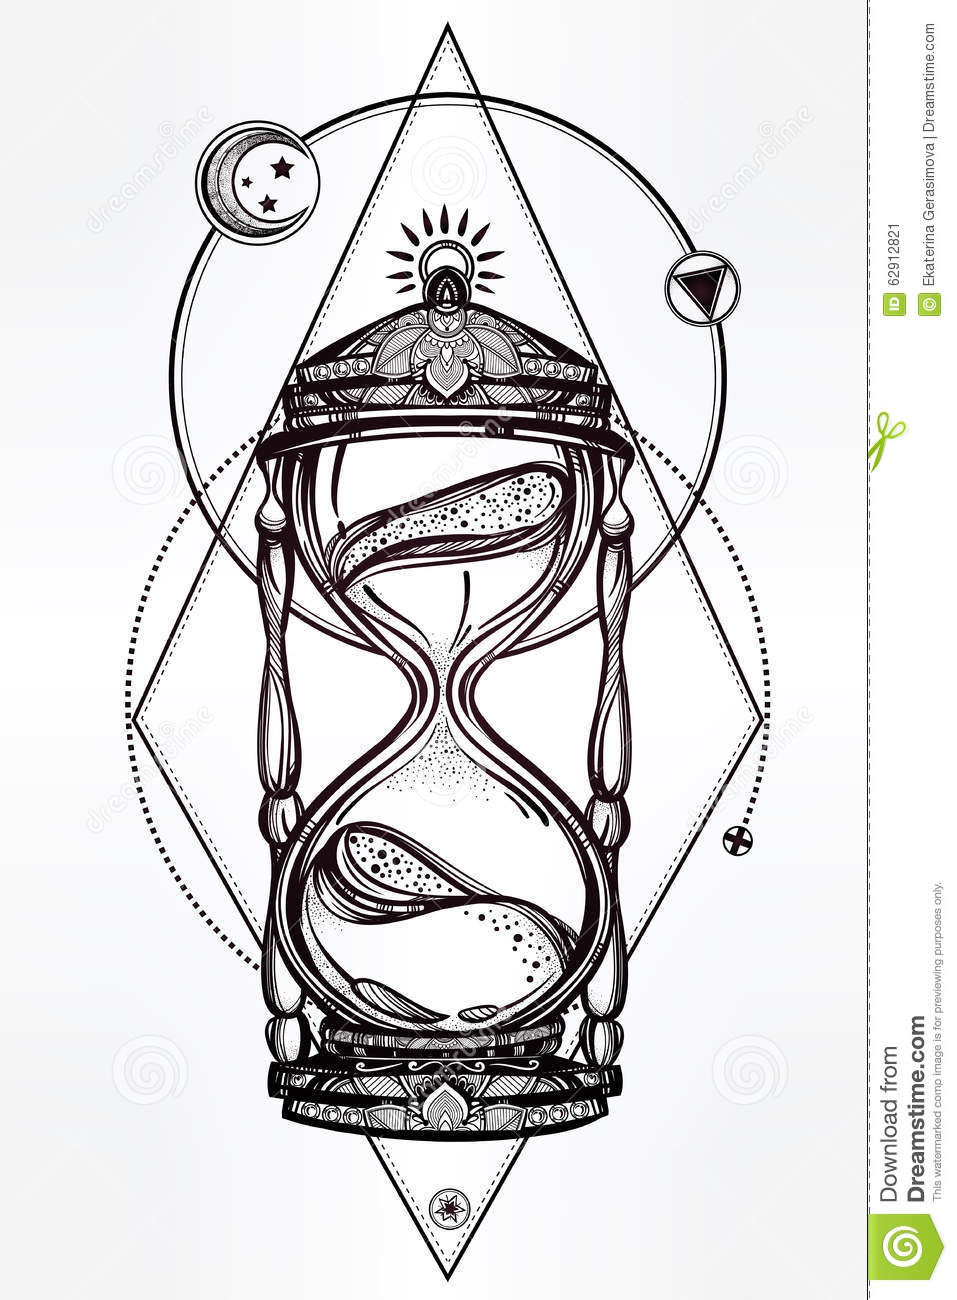 D Line Drawings Ideas : Hand drawn romantic design of a hourglass stock vector